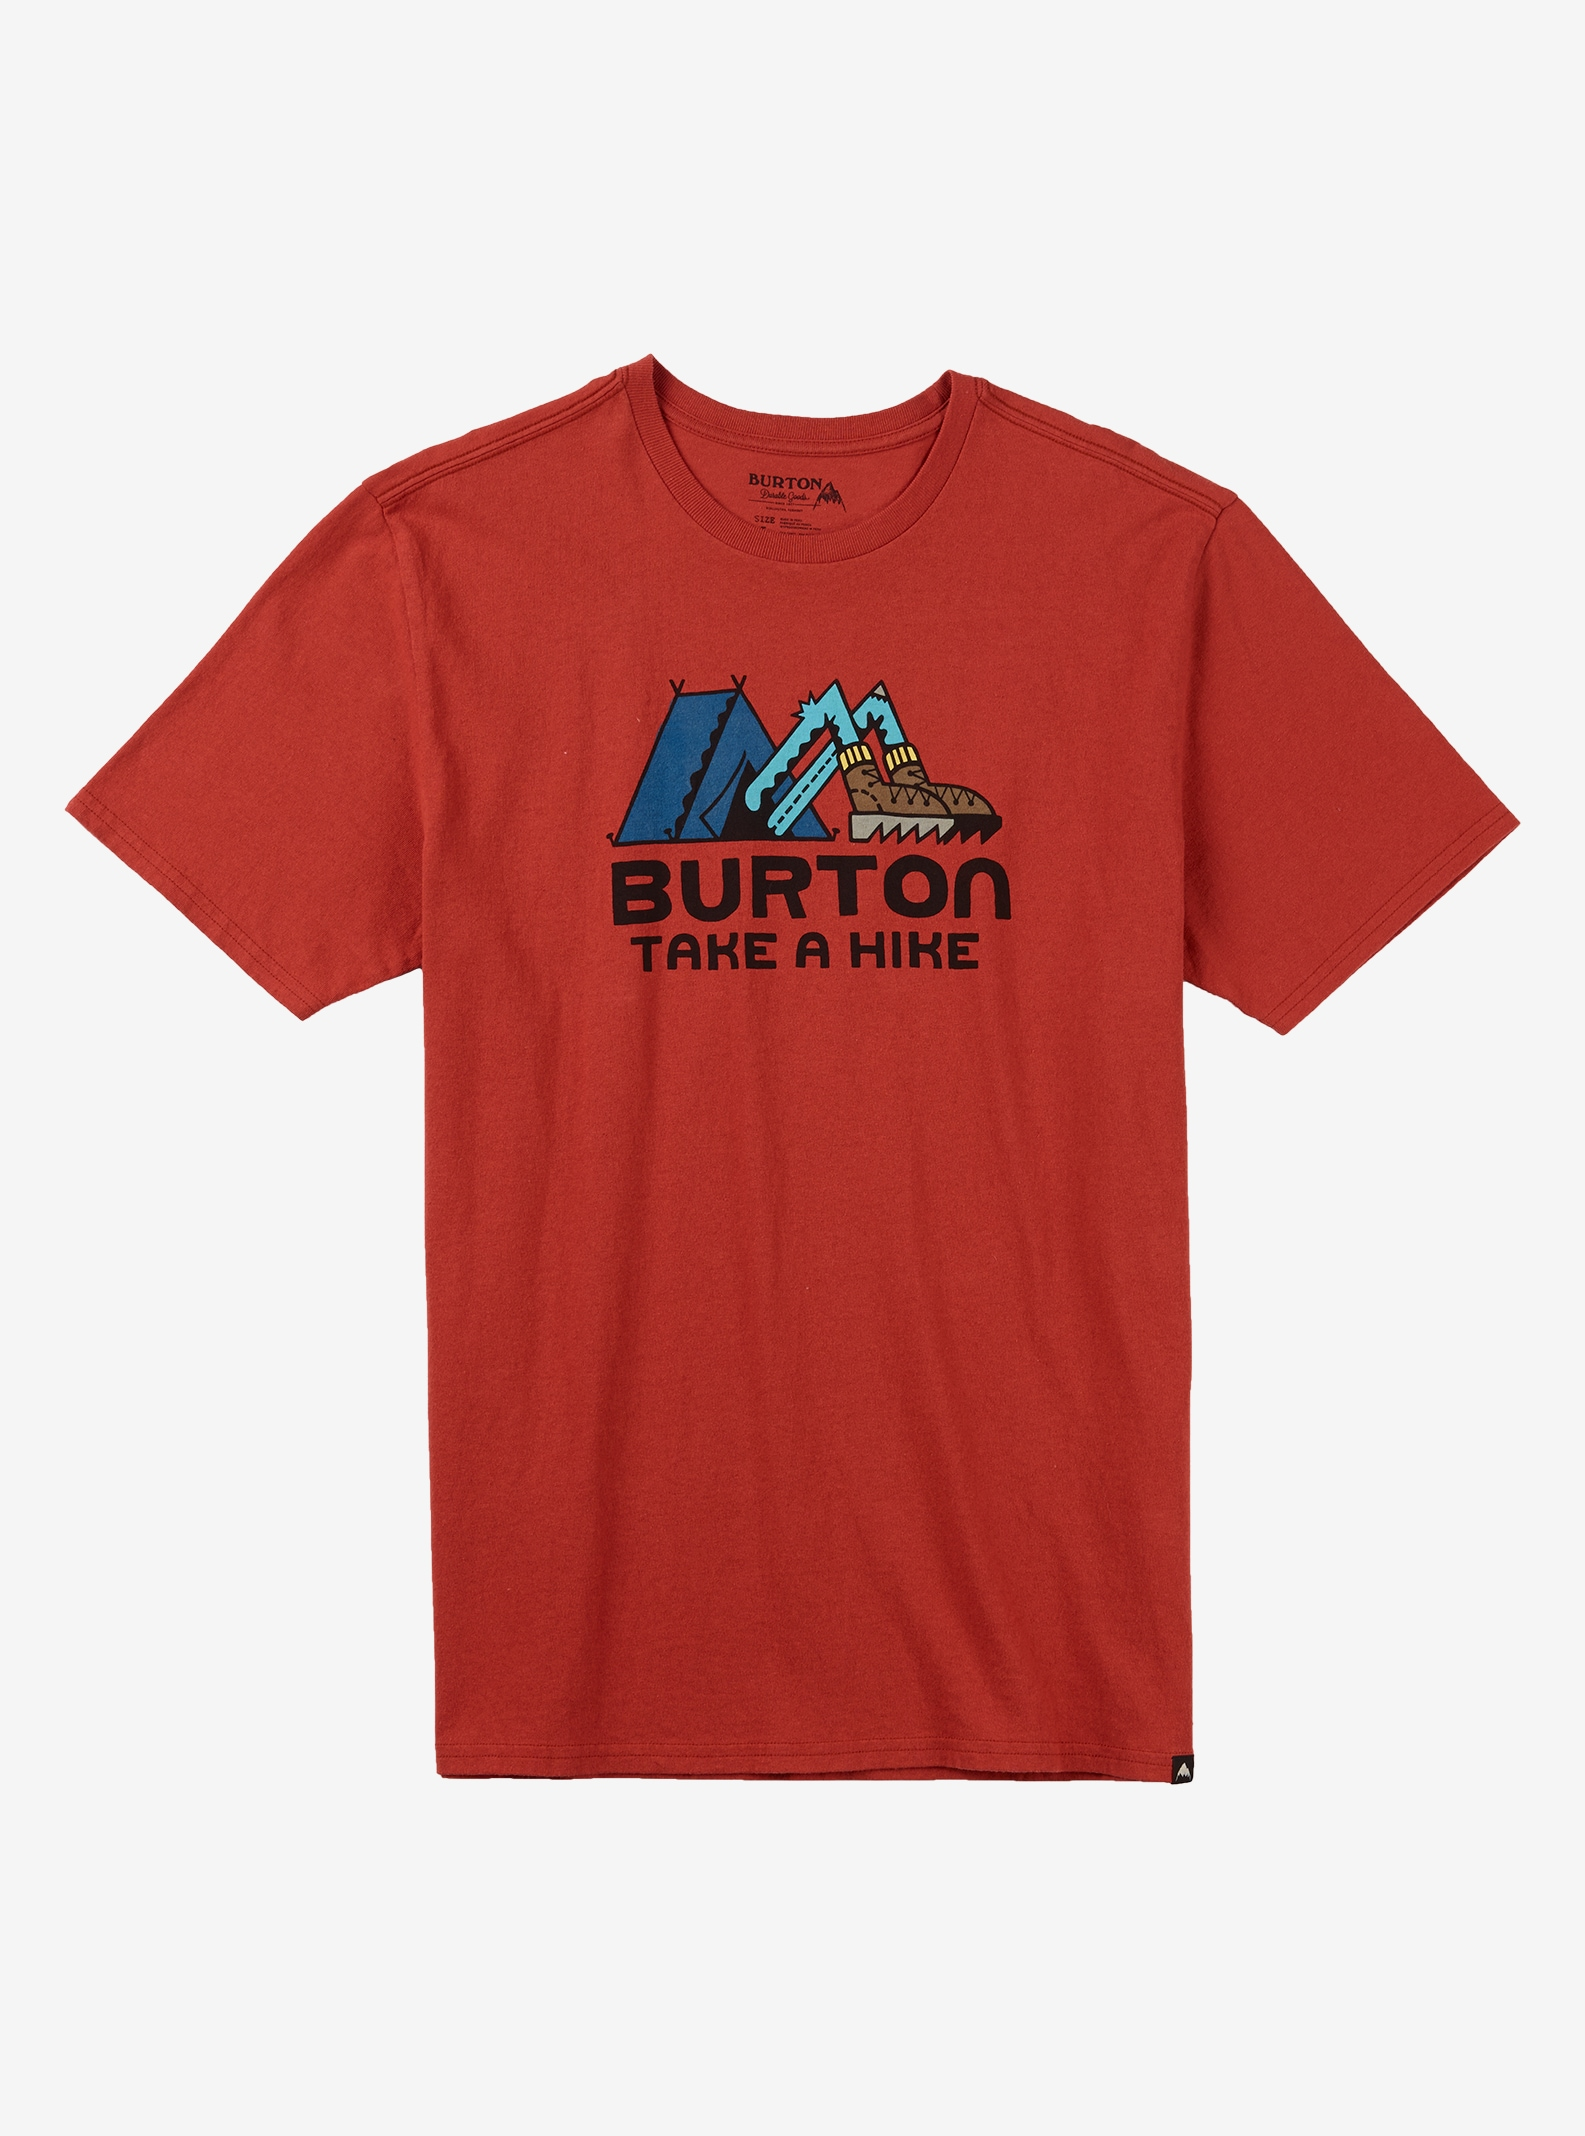 Burton Take A Hike Short Sleeve T Shirt shown in Tandori